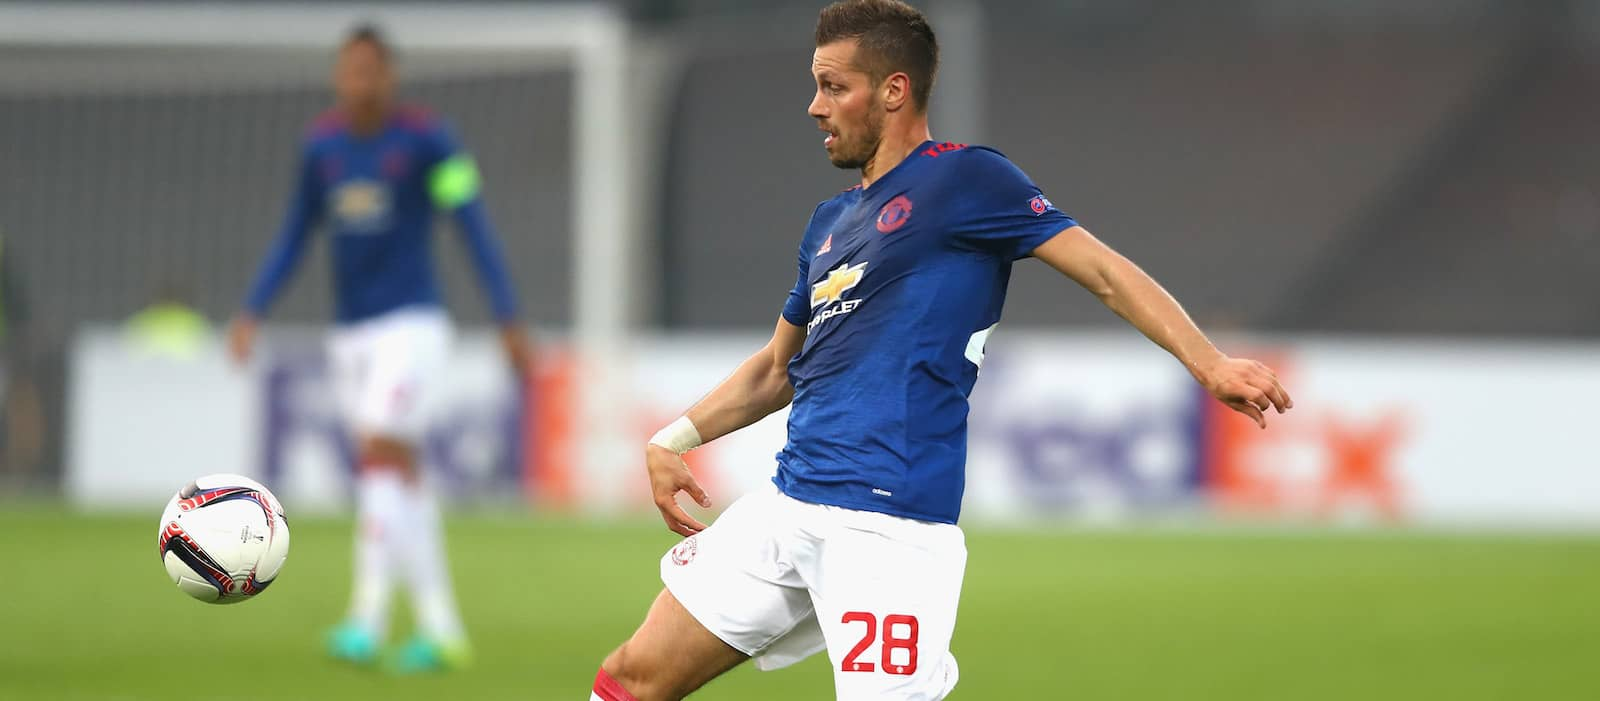 Morgan Schneiderlin opens up about his failure at Manchester United